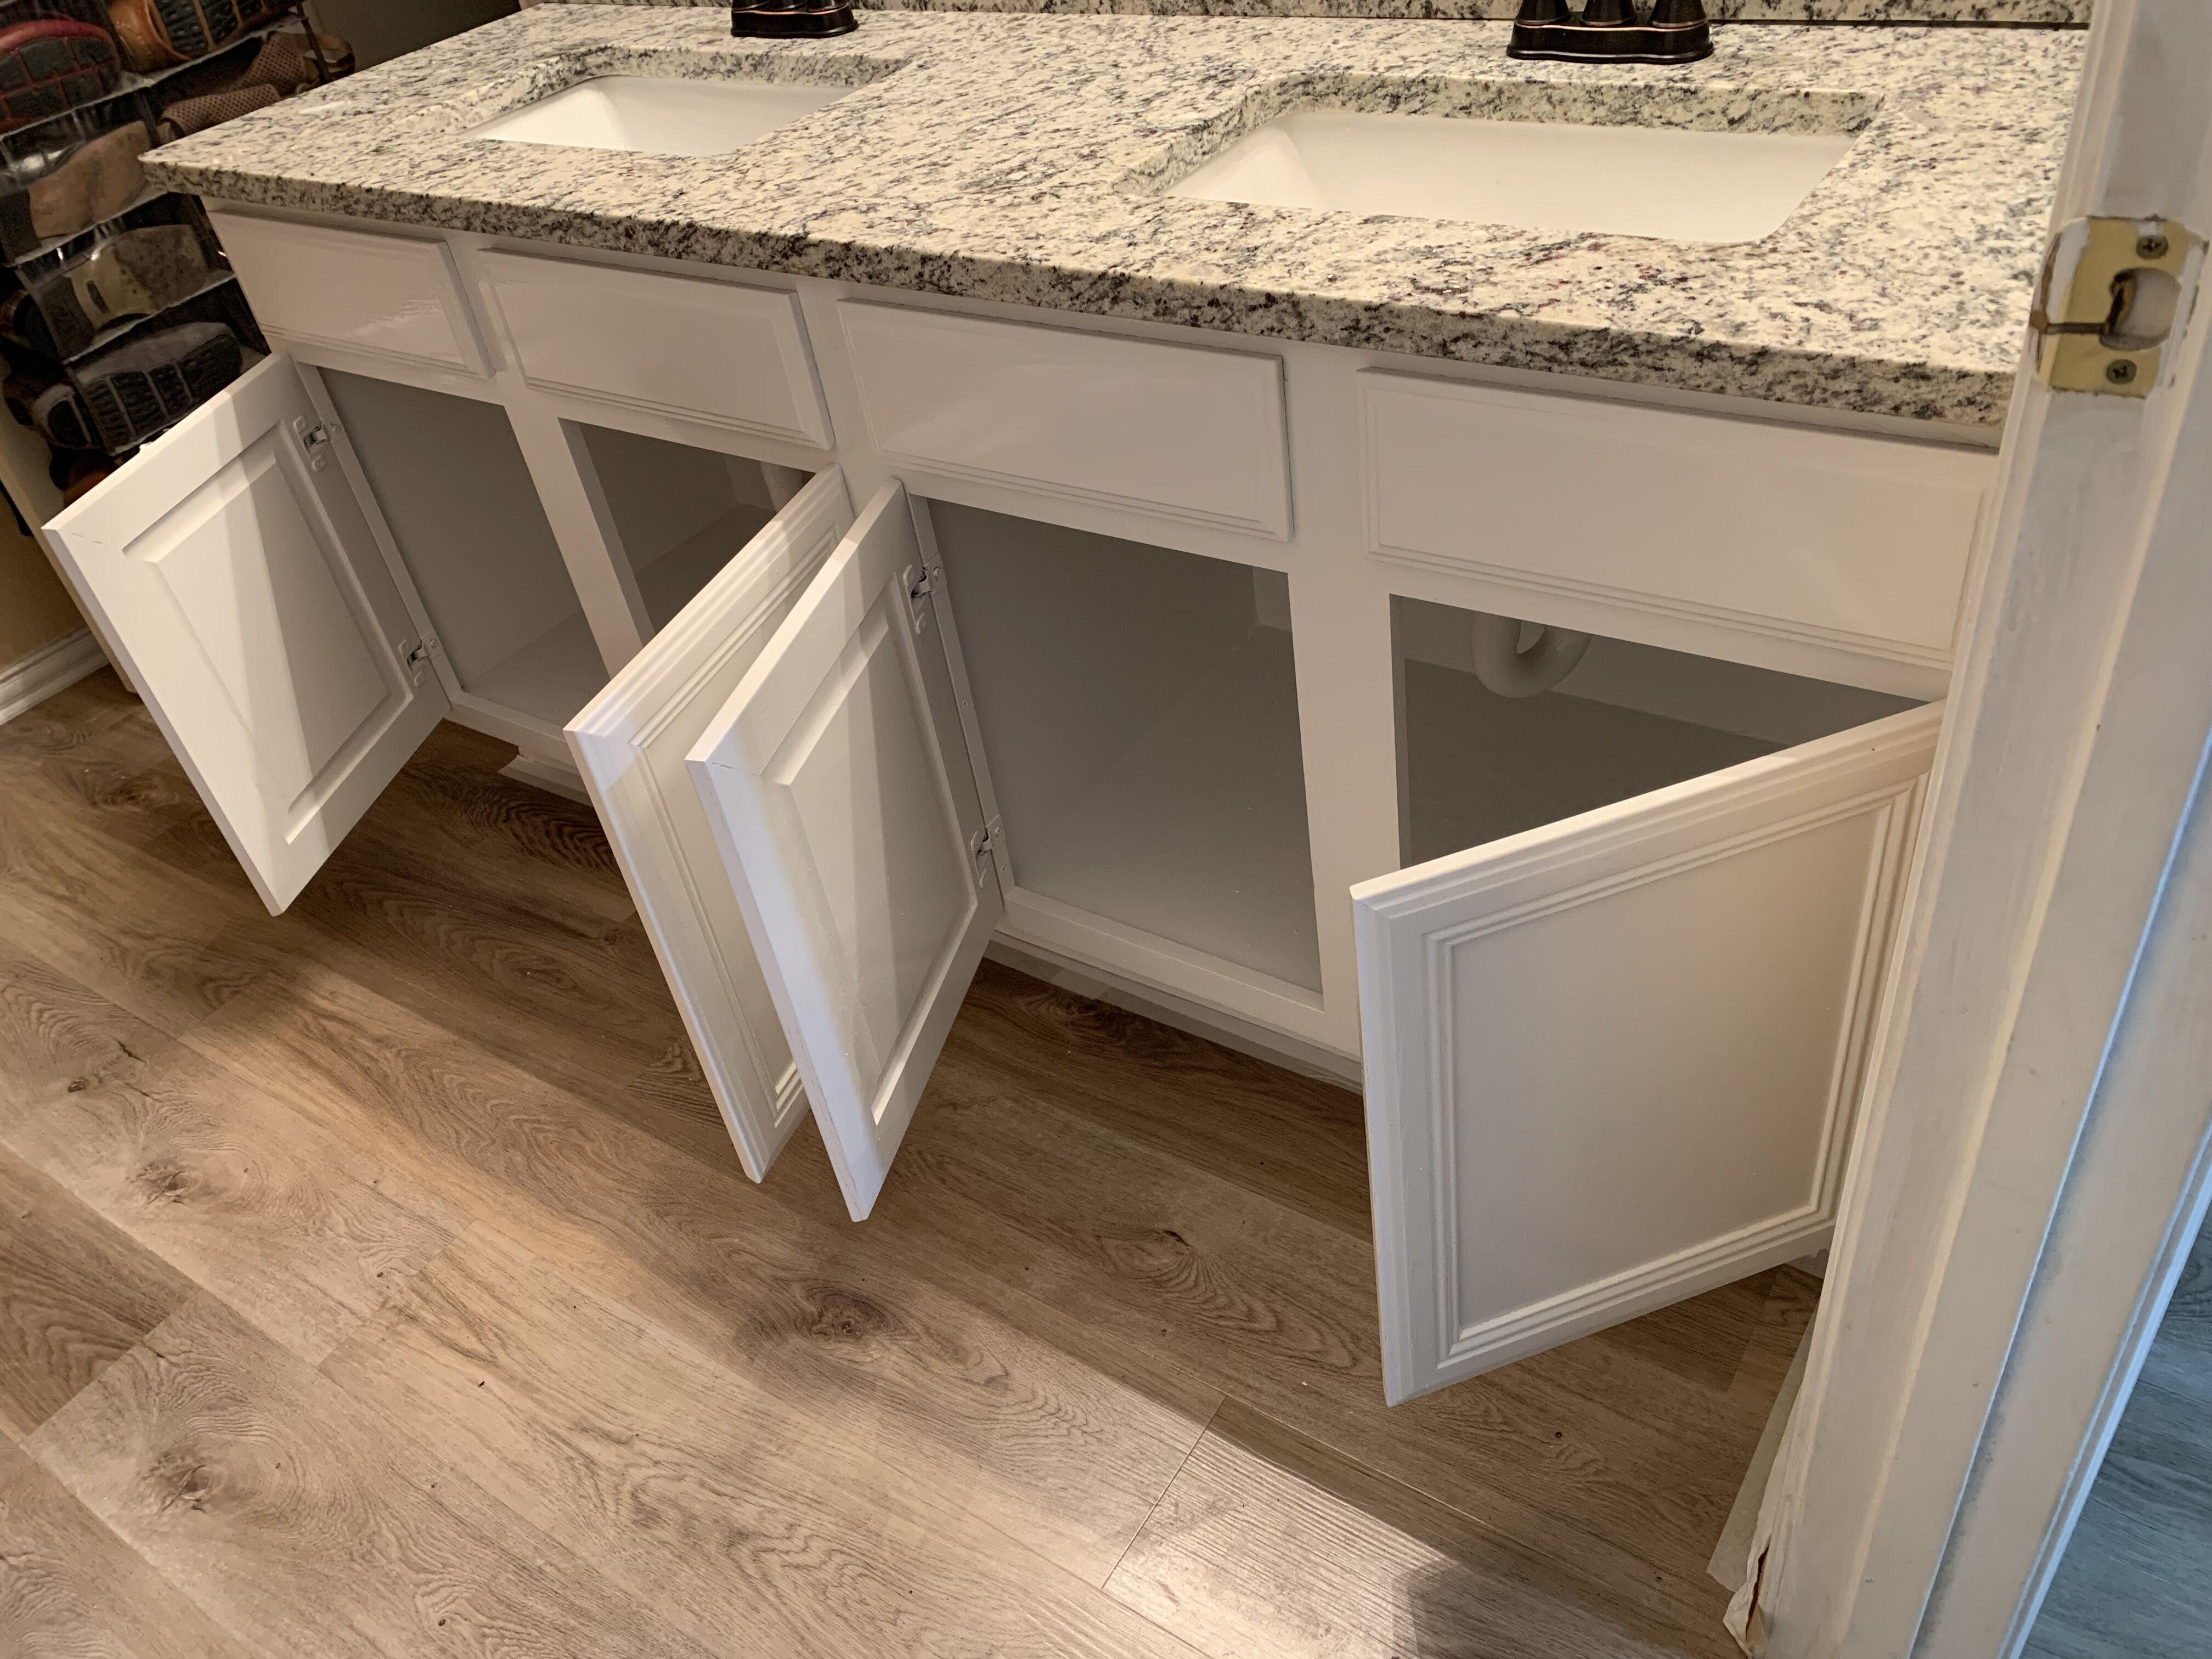 Bathroom Vanity Before And After Update With Paint Dfw Painting Interior And Exterior Professional Painters In Dallas